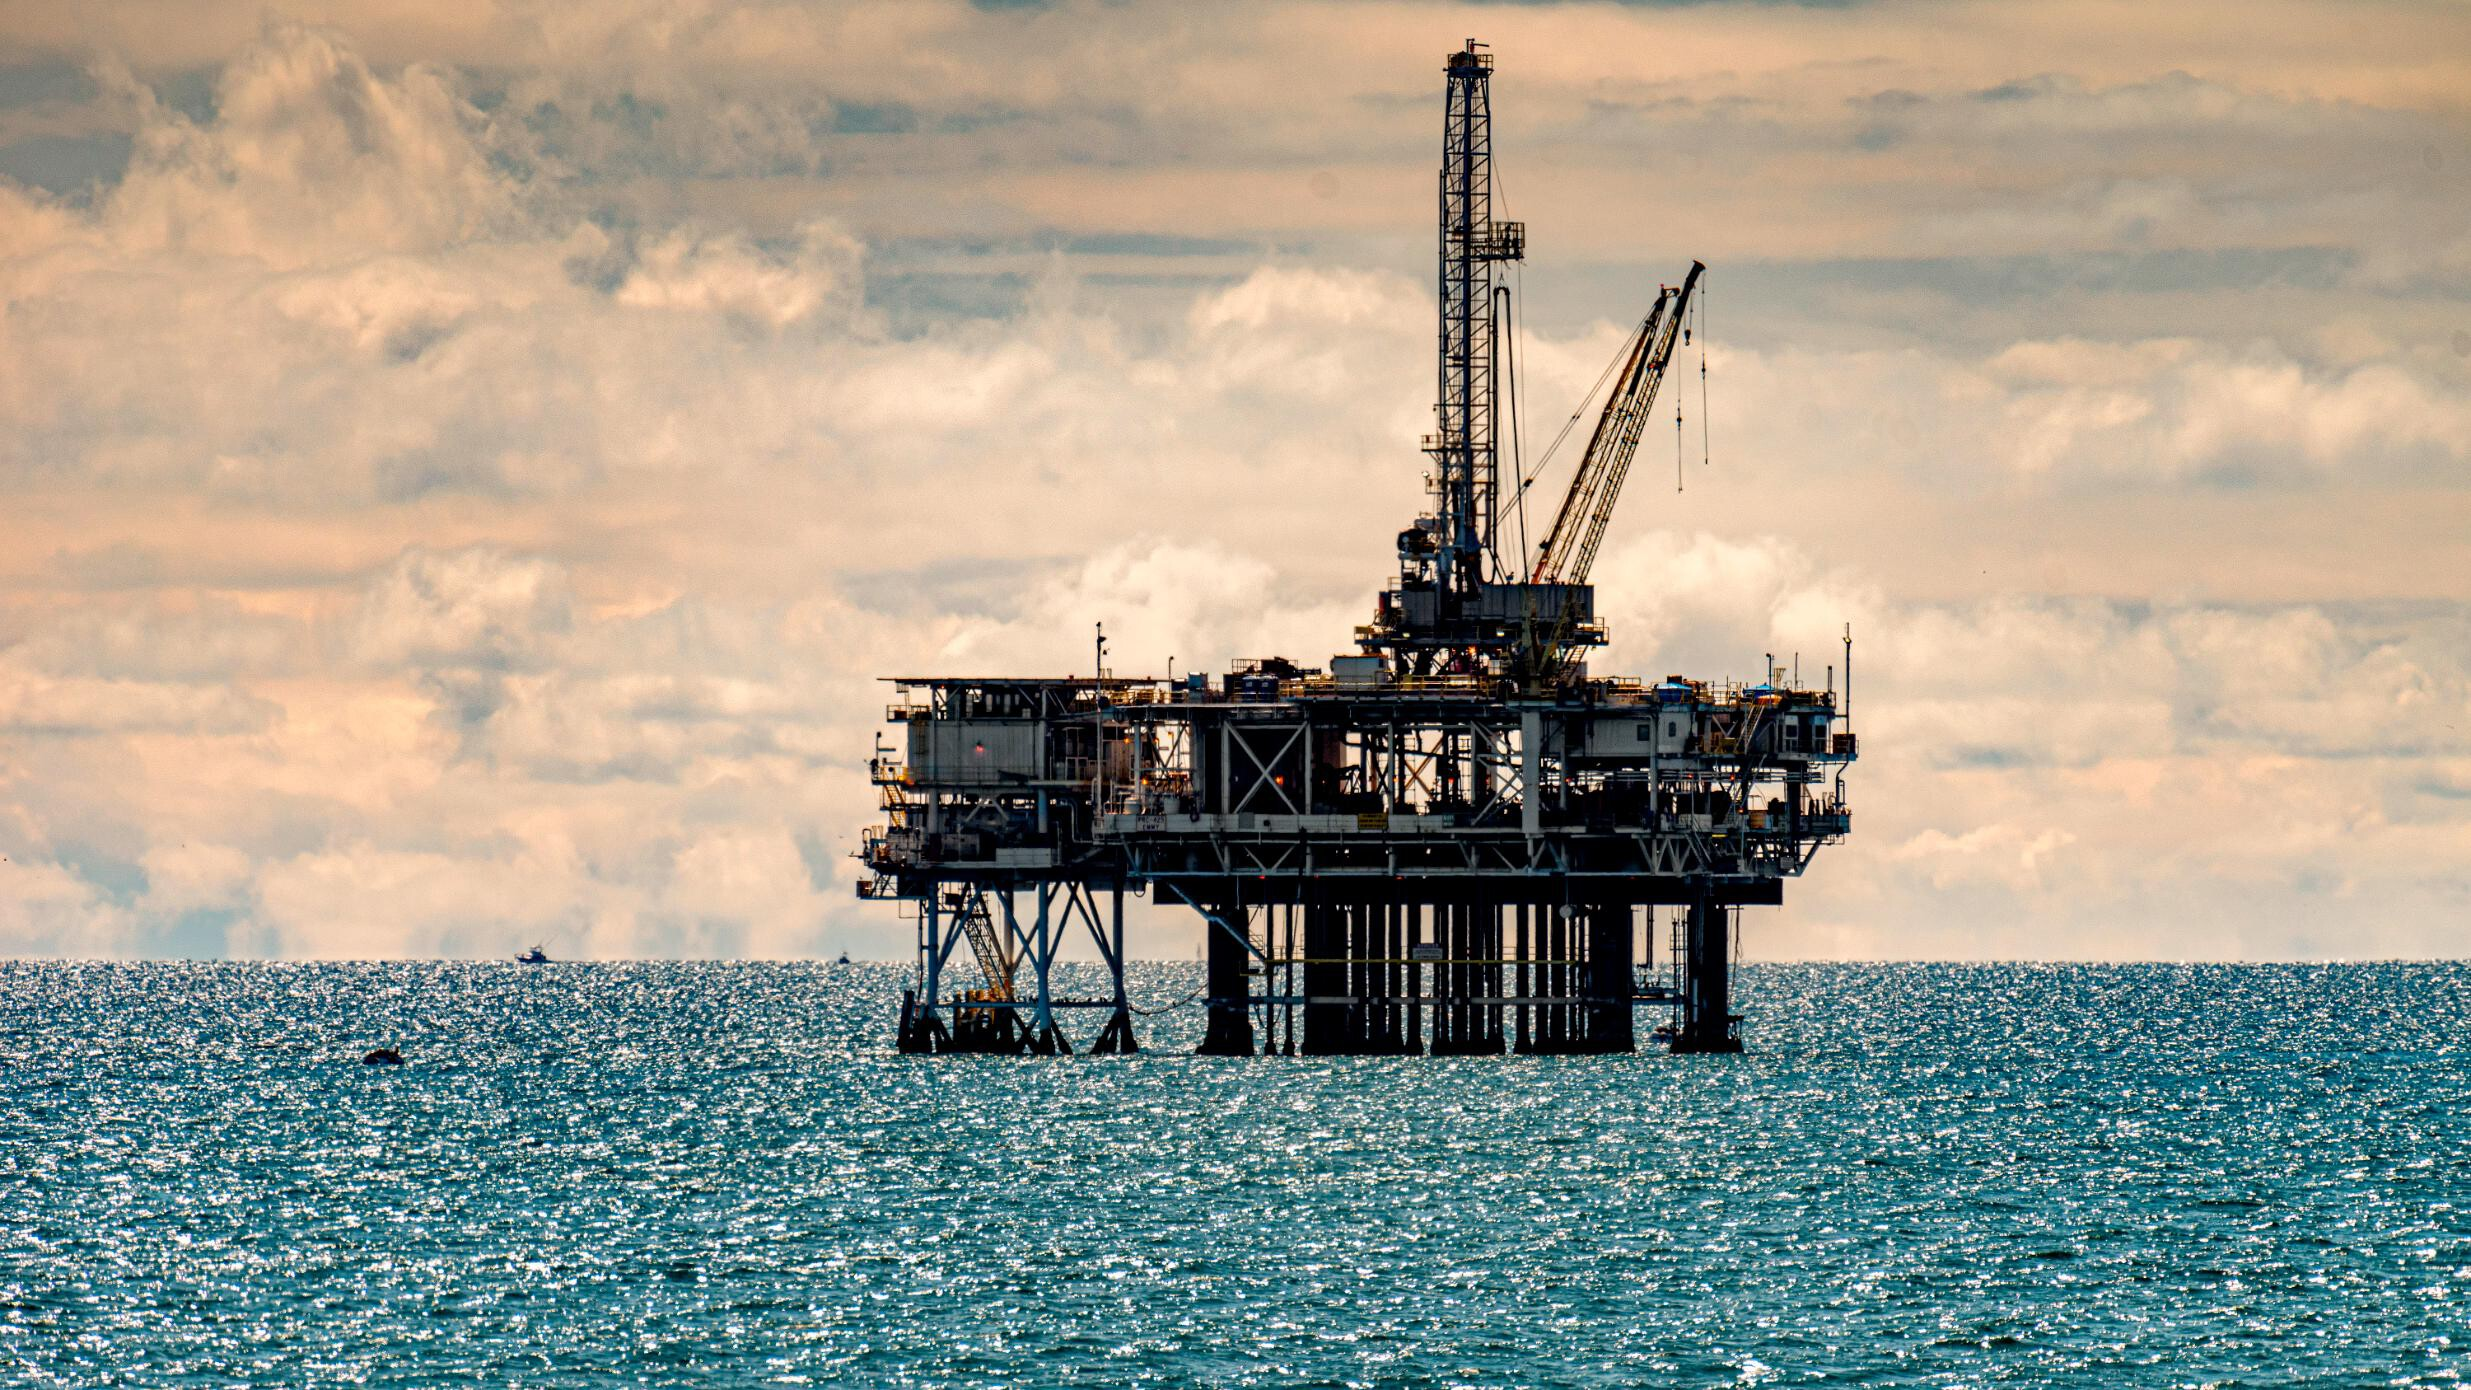 America's offshore oil infrastructure is aging. 'We don't know there's a problem until there's a problem.'